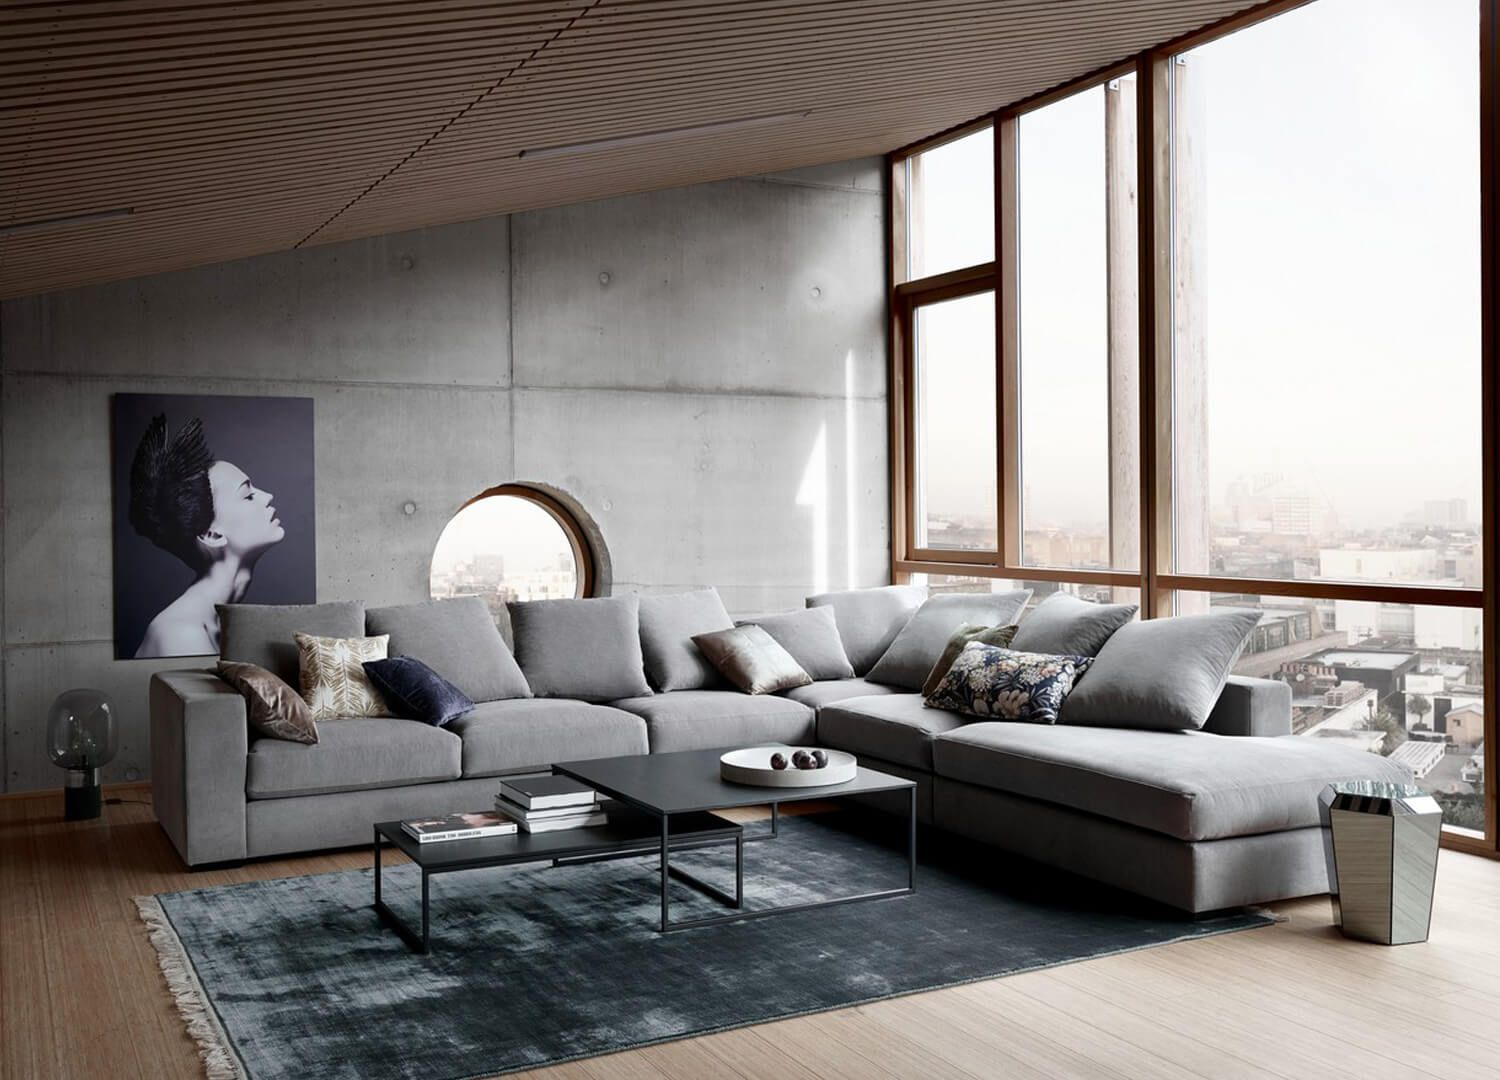 Cenova Sofa By Boconcept Est Living Design Directory Living Design Furniture Design Boconcept Sofa